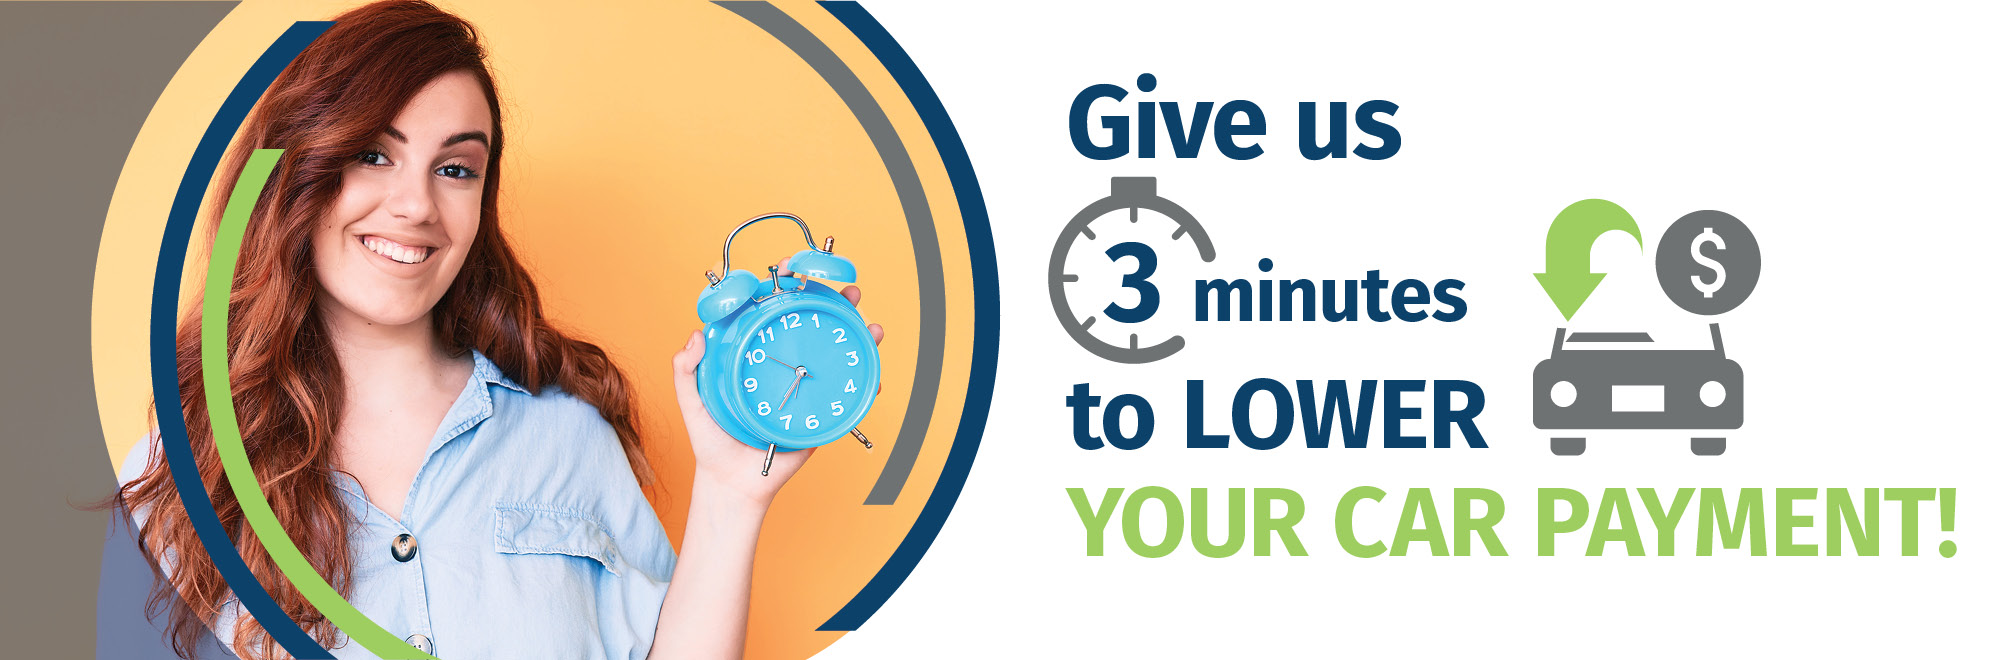 Give us 3 minutes to lower your car payment!